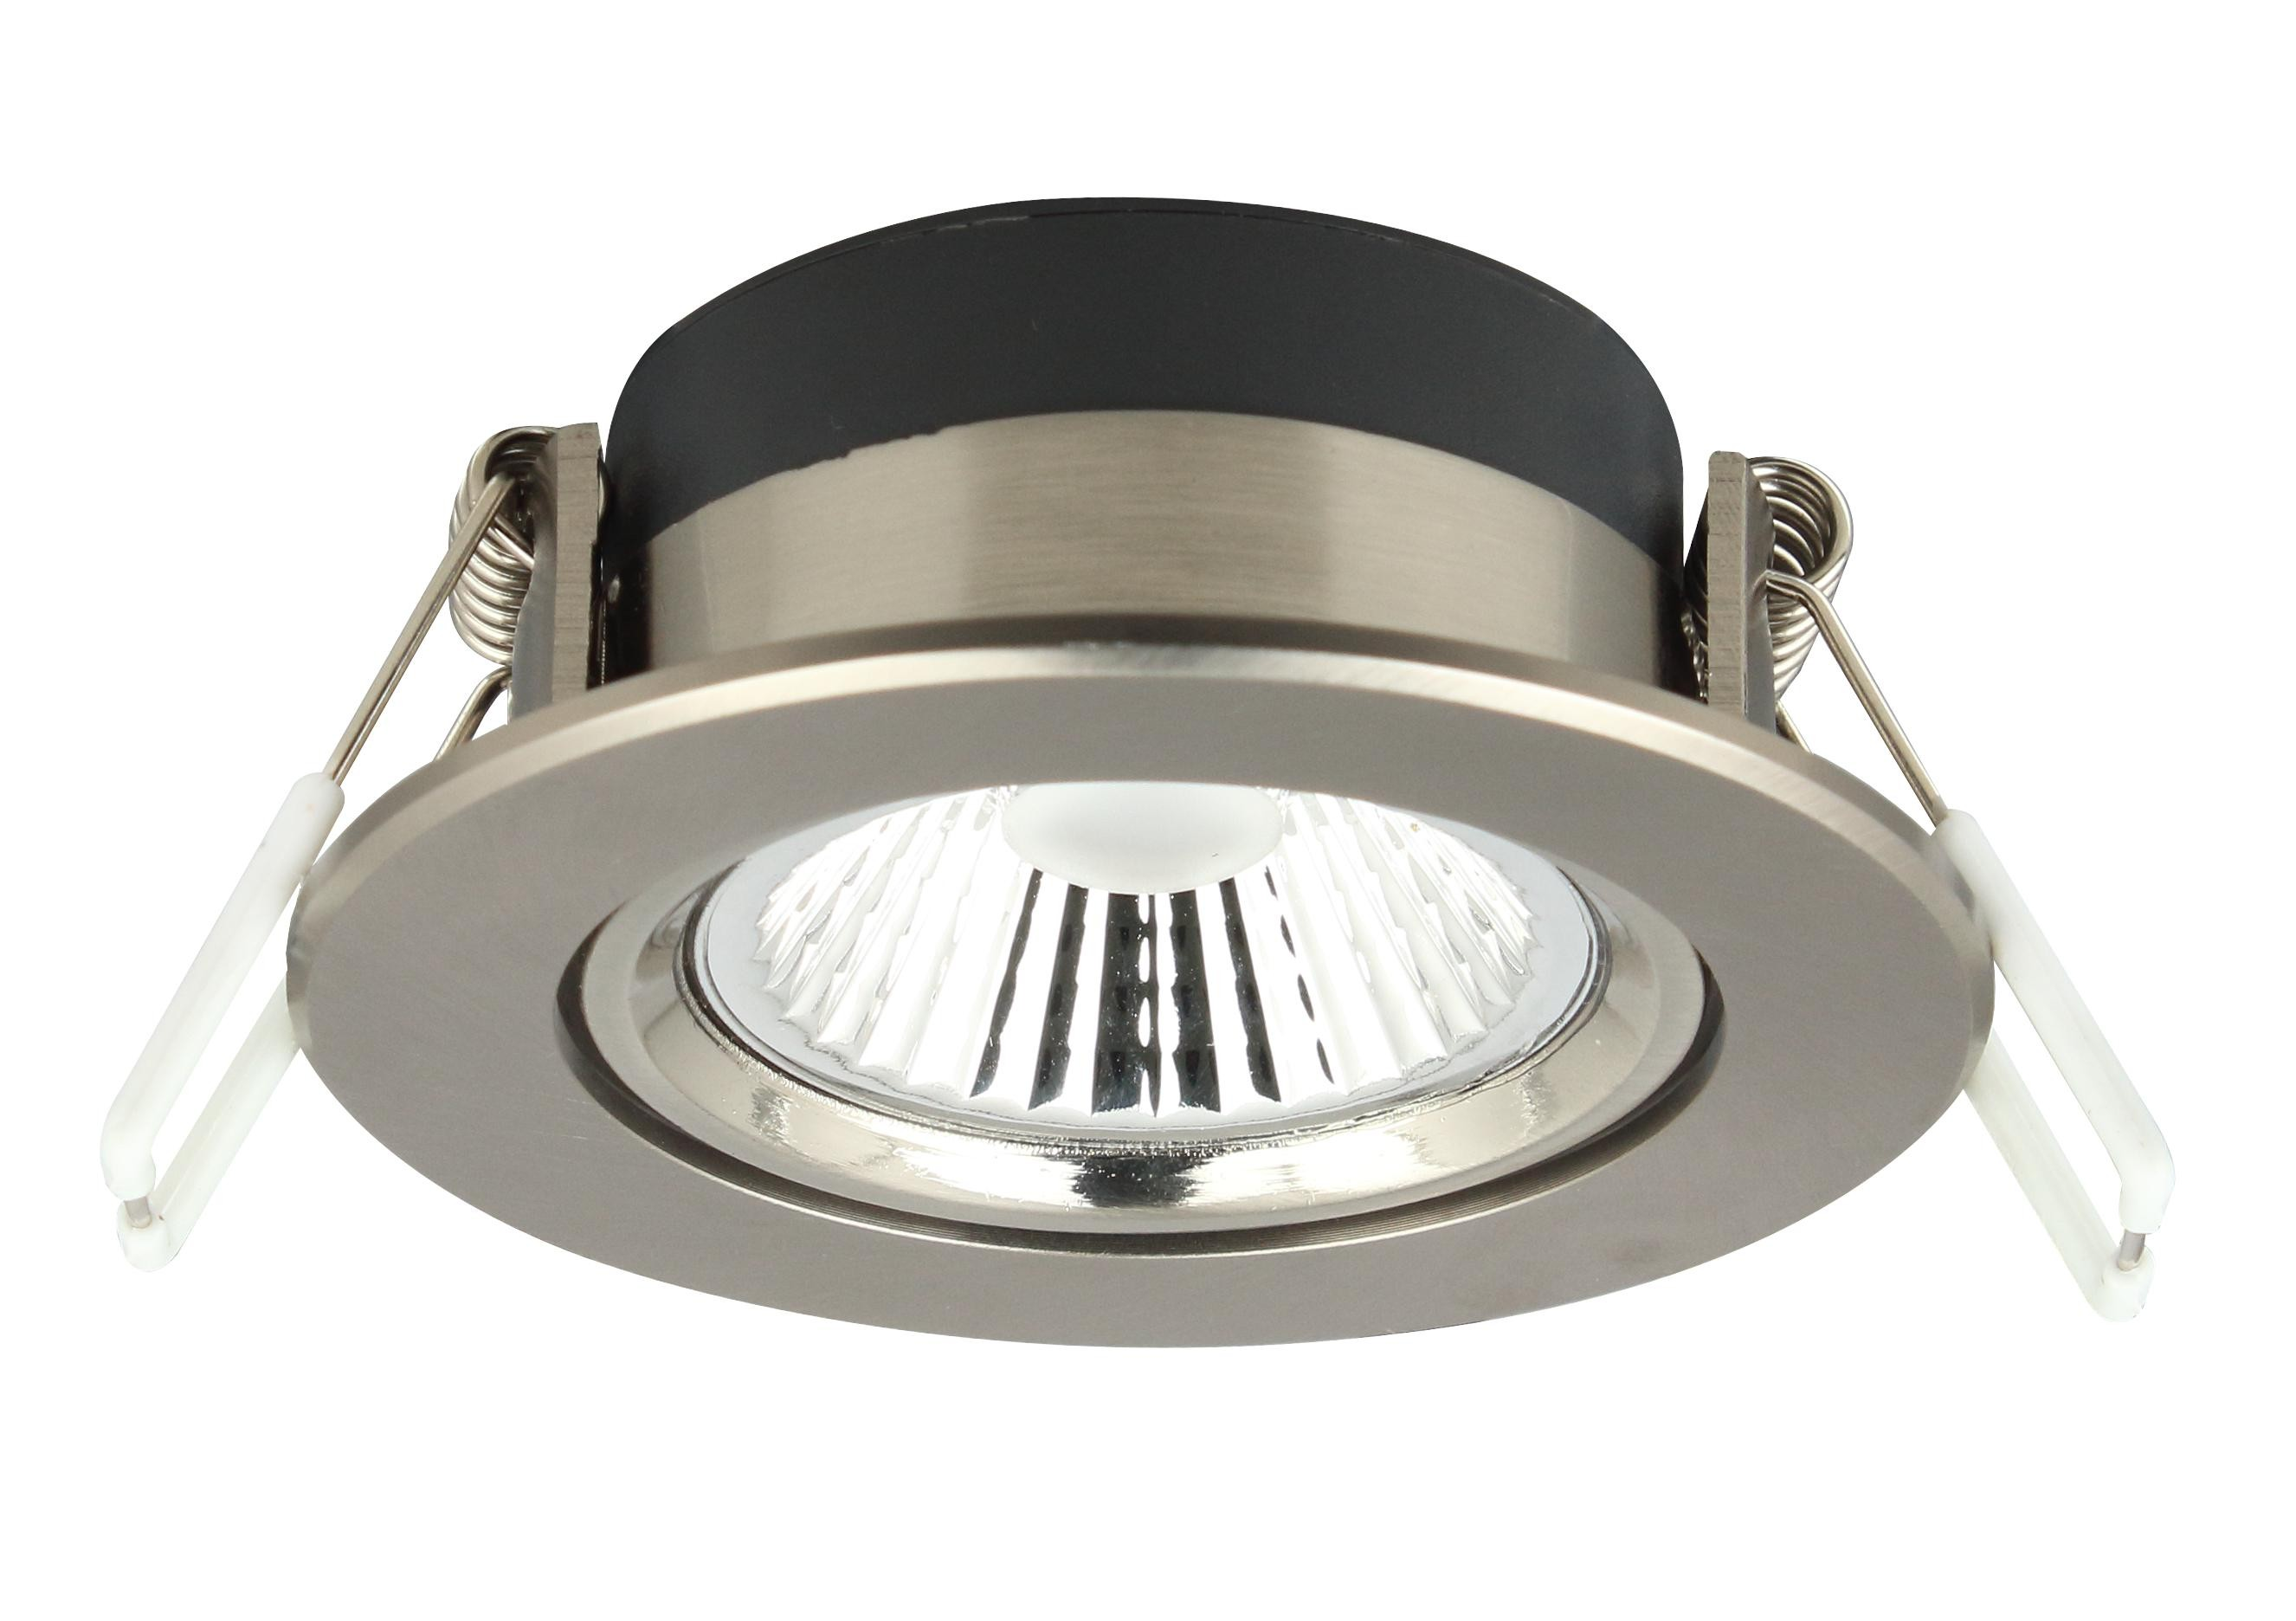 Civilight_Downlight_WCVC002W06 nickel - 8139